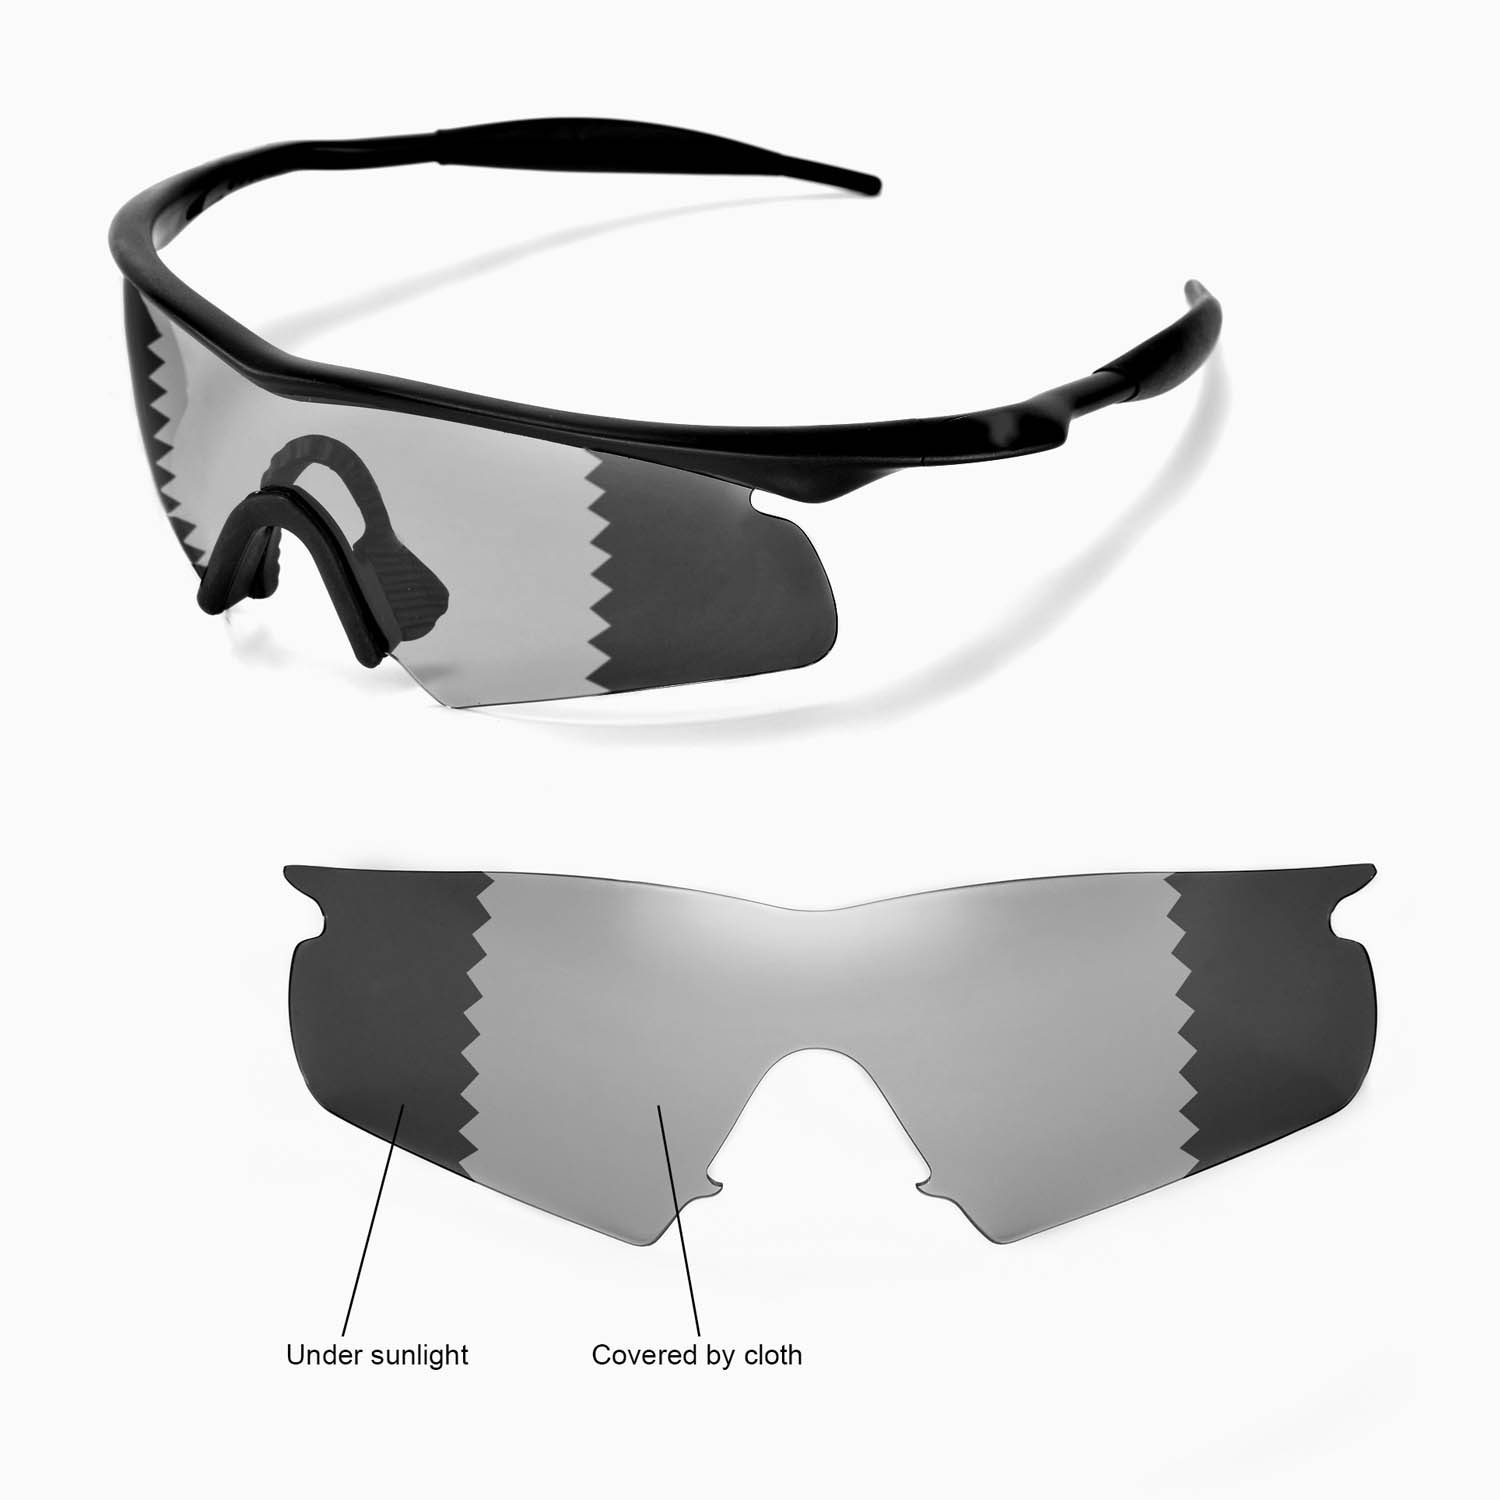 ... Oakley M Frame Hybrid x1; Walleva Microfiber Lens Cleaning Cloth x1.  main image